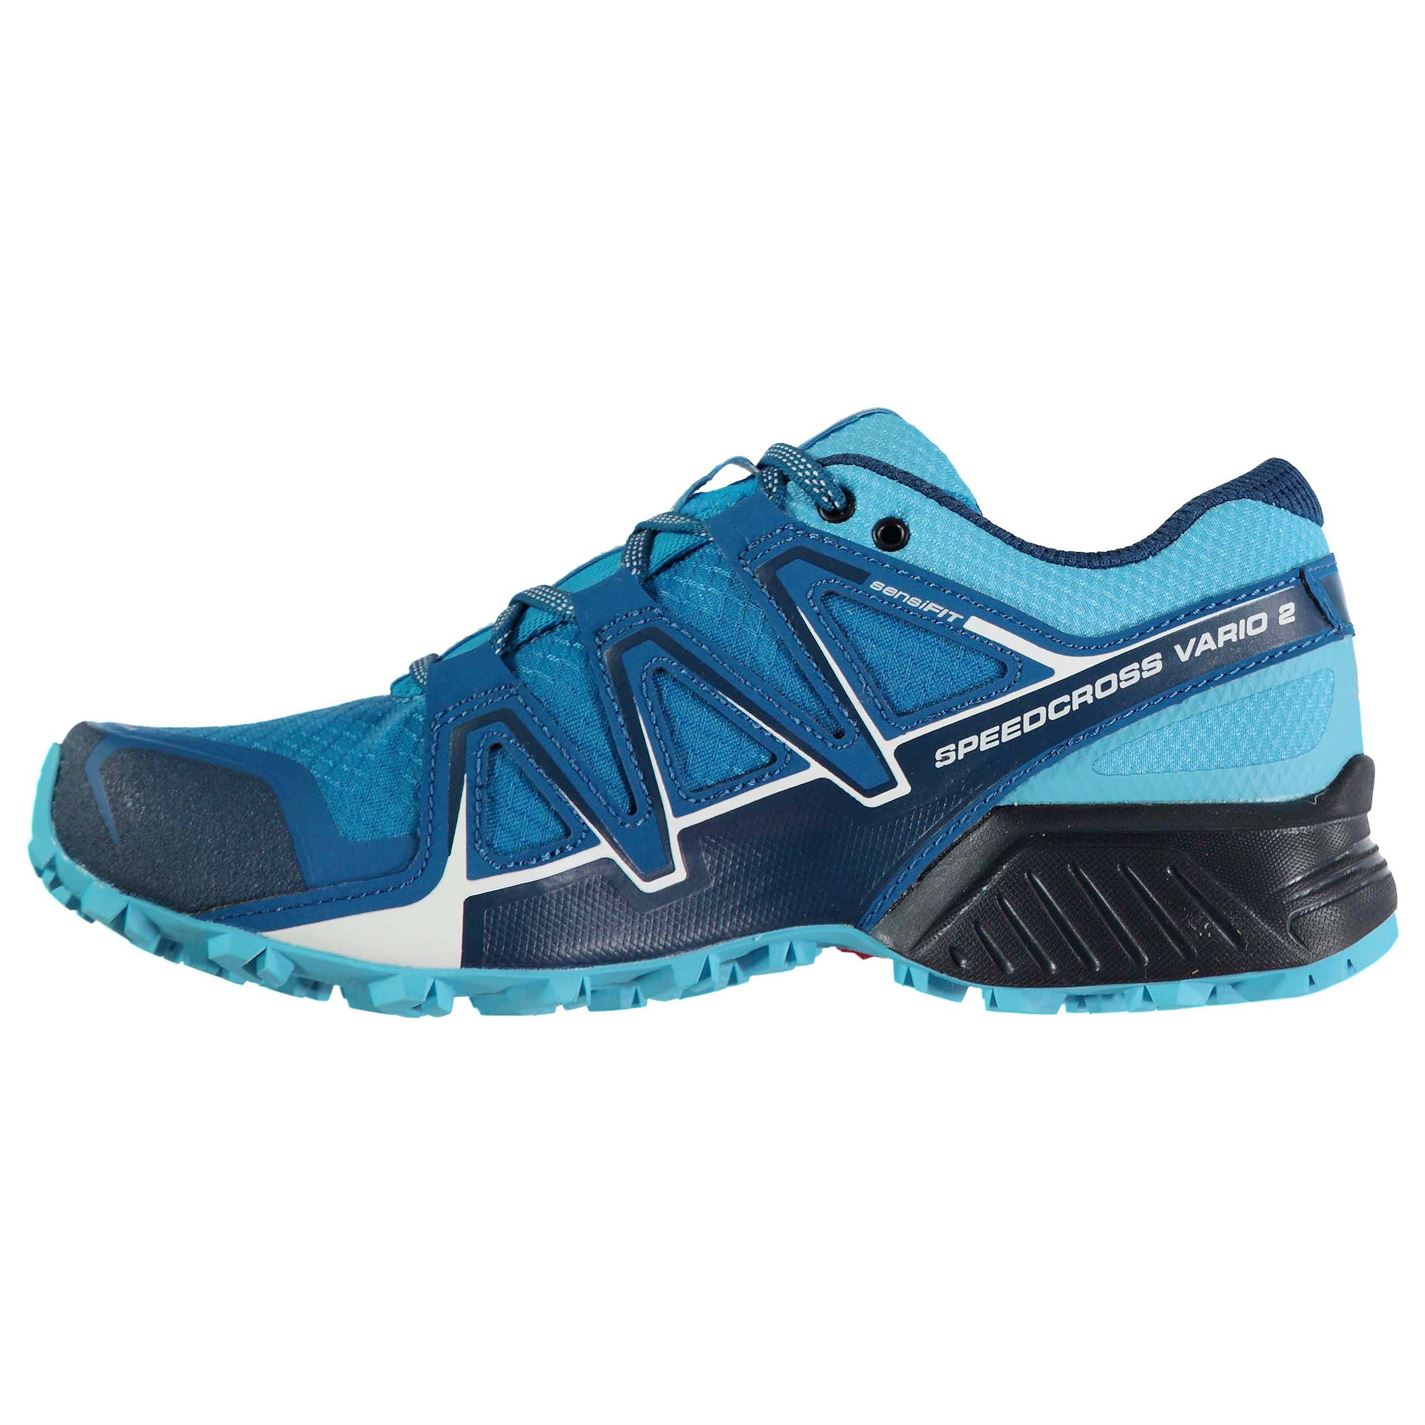 Salomon Speedcross Speedcross Speedcross Vario 2 Trail Running Zapatos para mujer bc3ff3